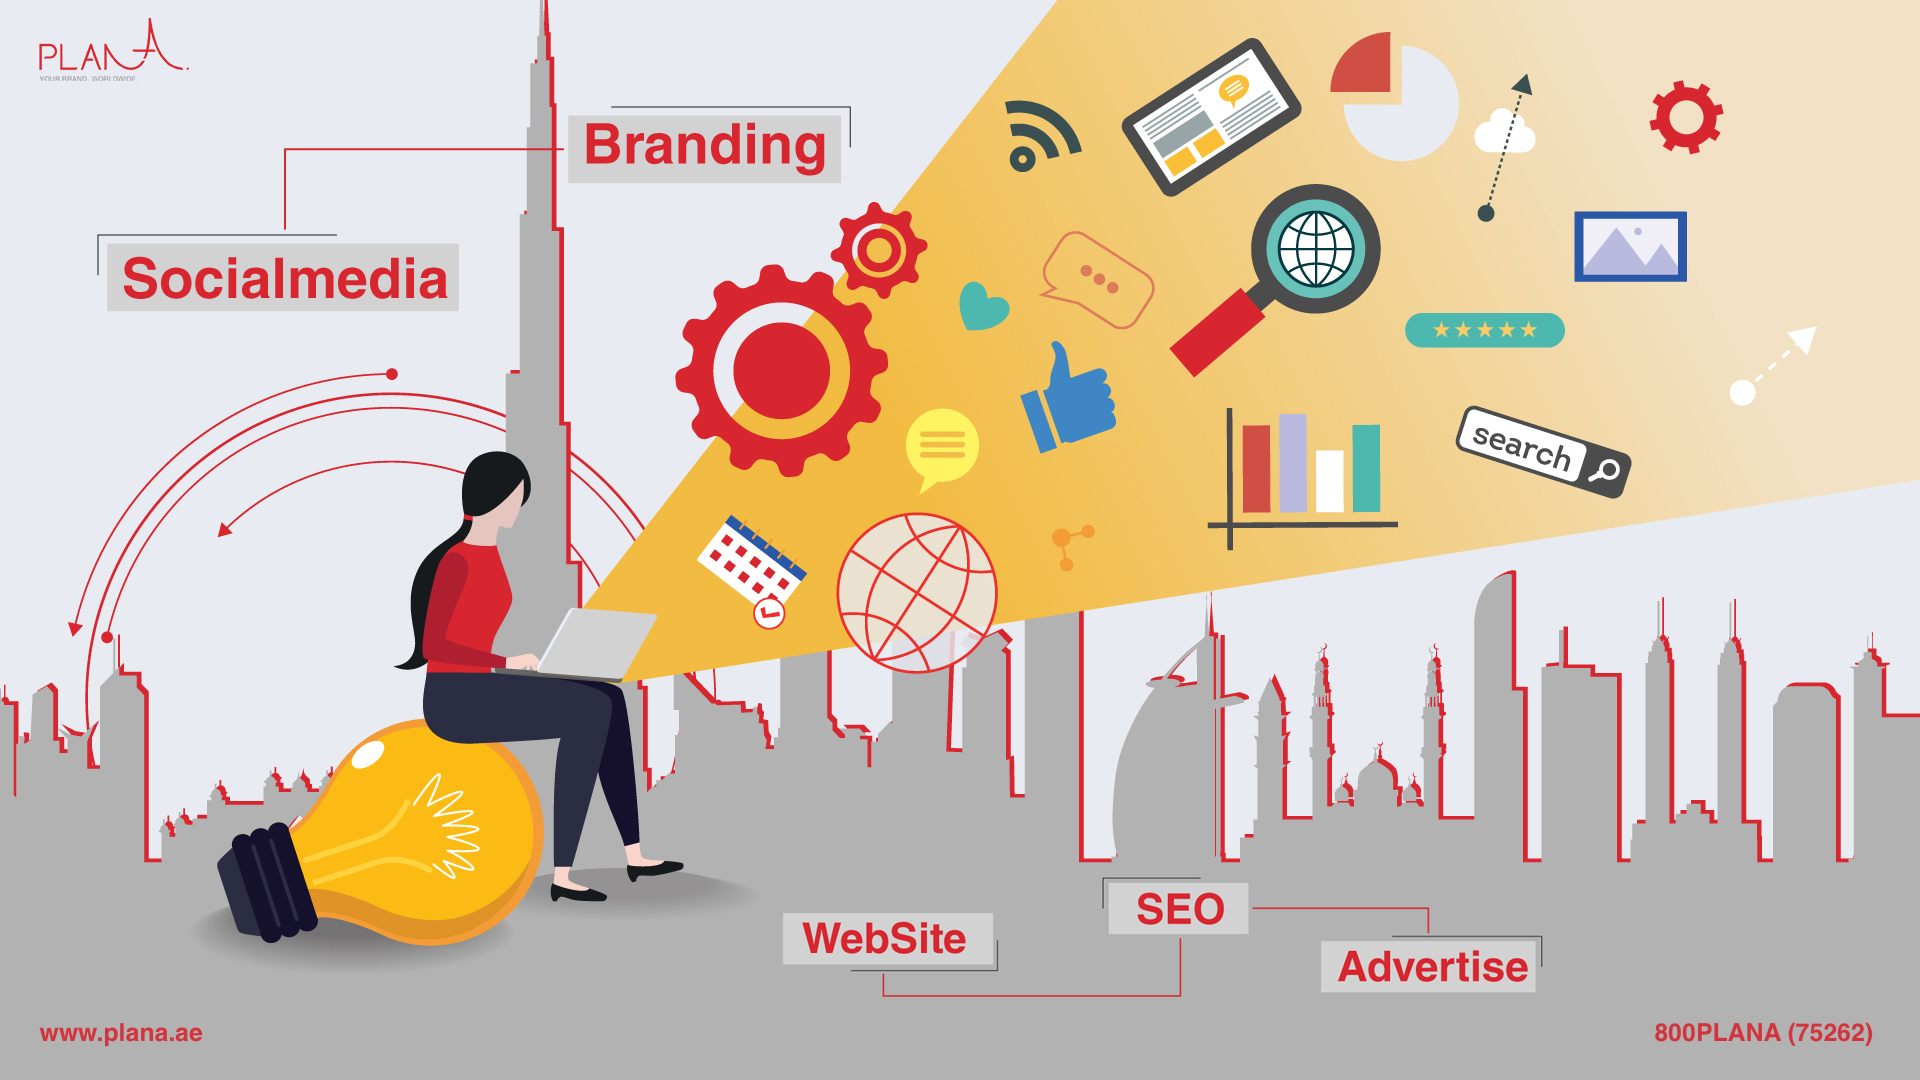 Who Provides Affordable Digital Marketing Services in Dubai?